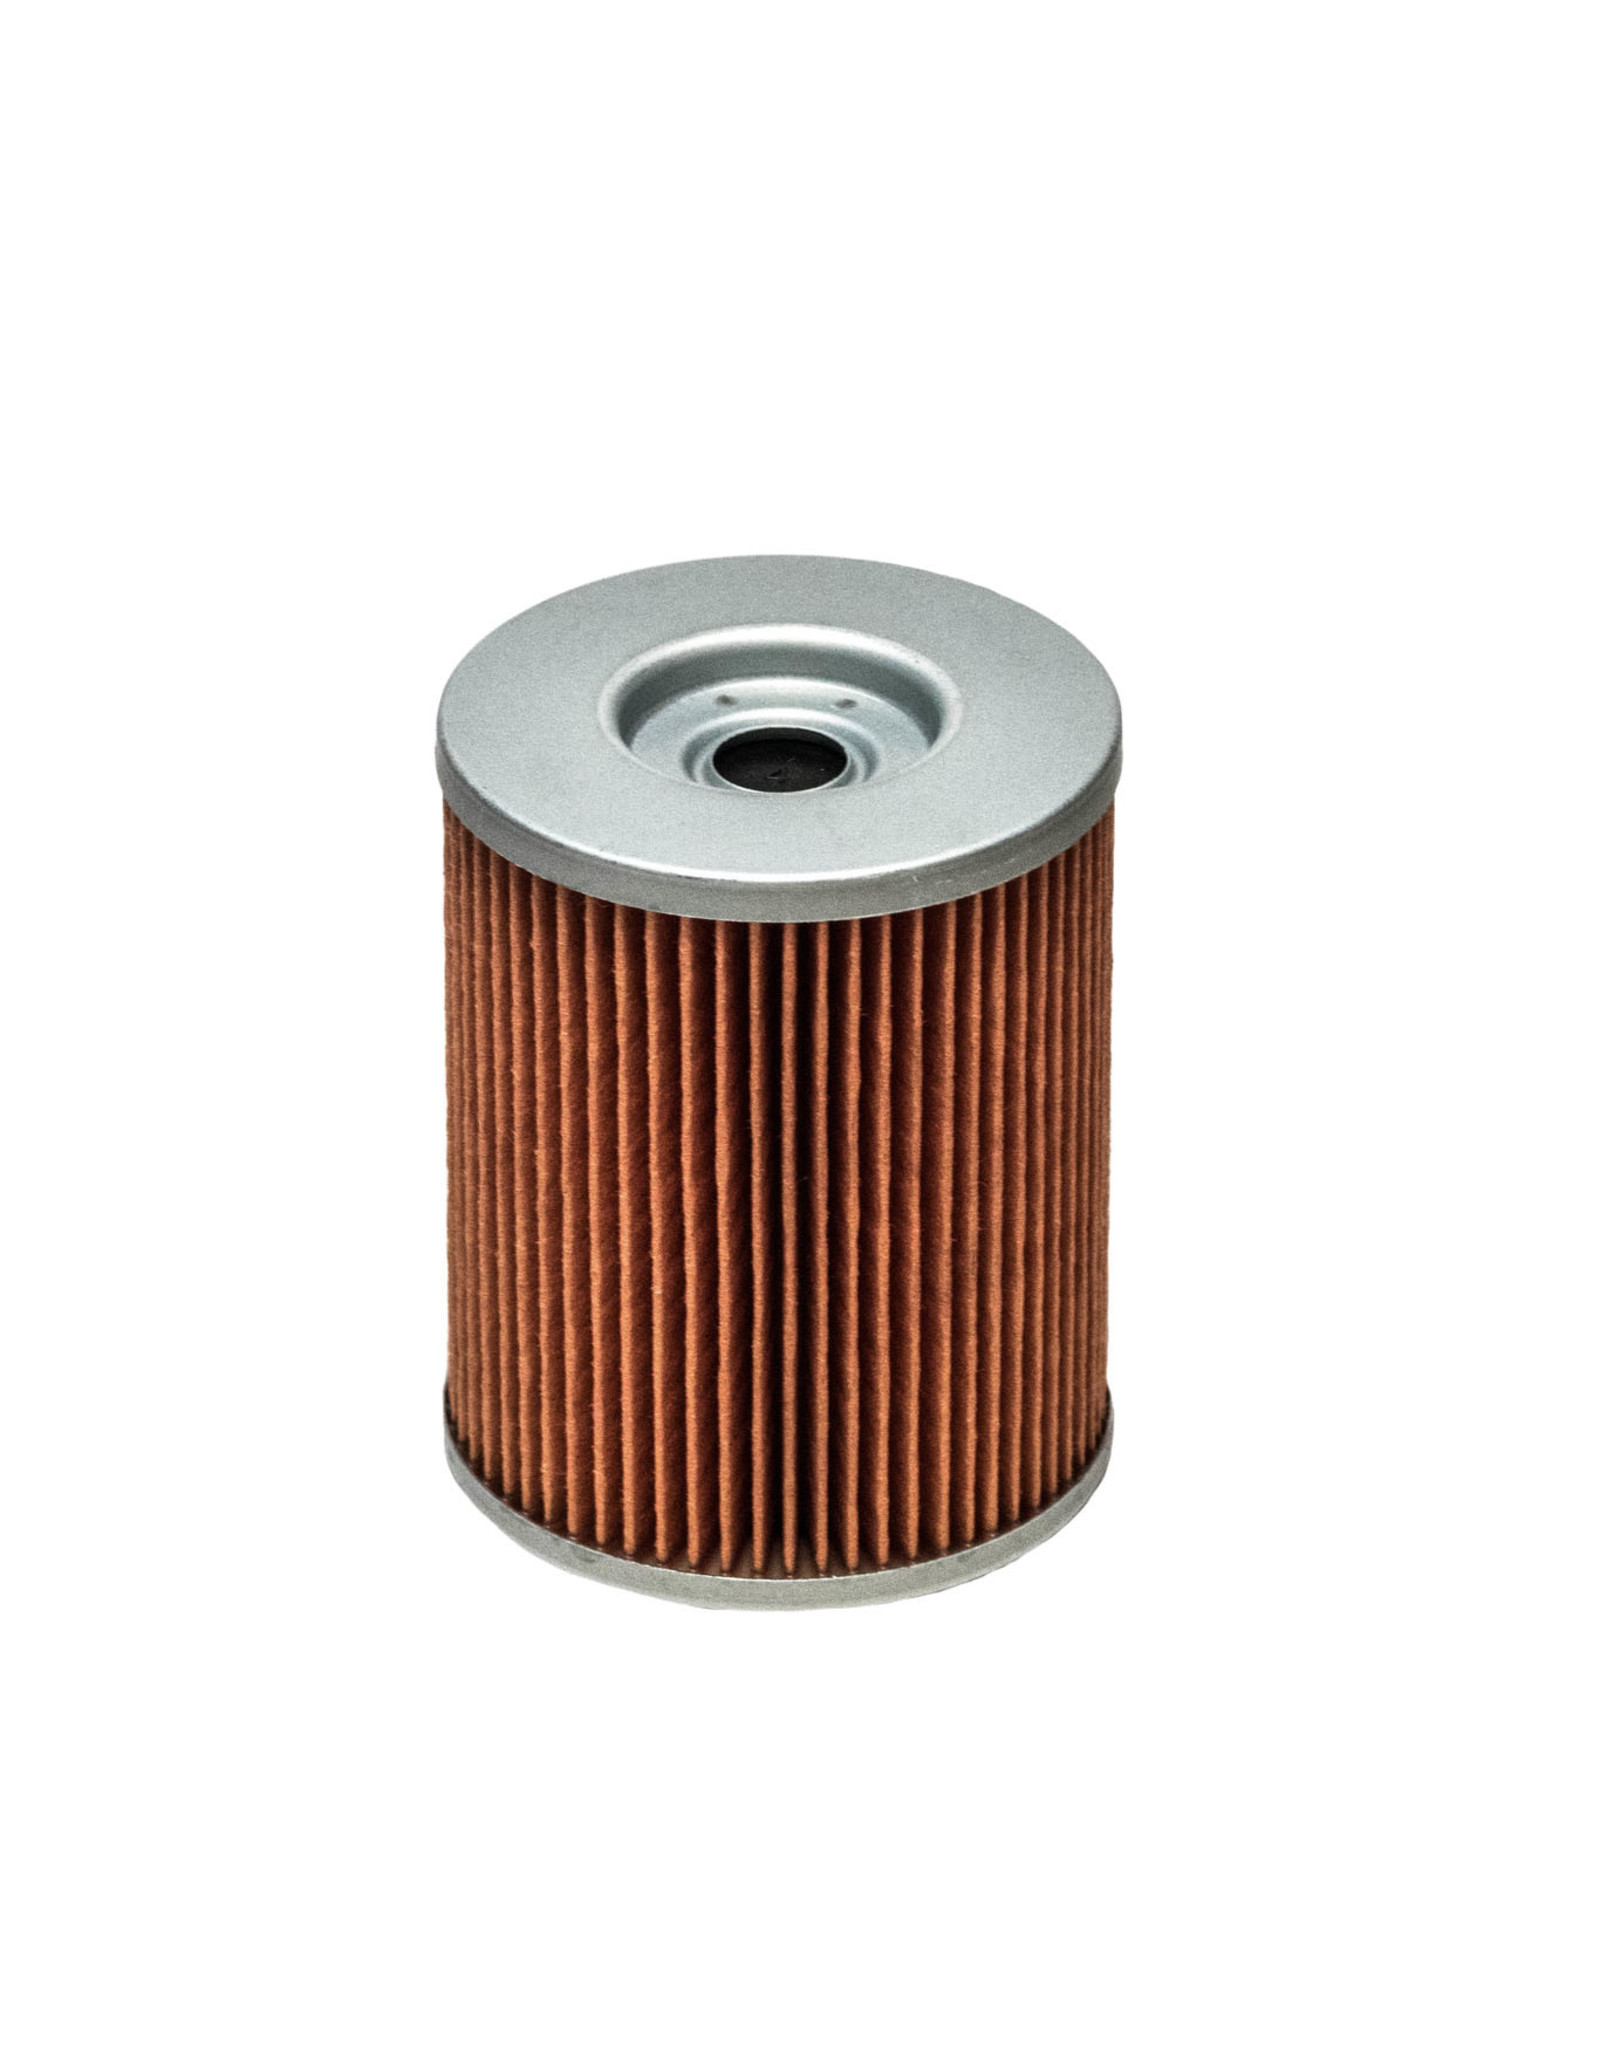 Aprilia Oil Filter standard (Suitable for RSV/Tuono 98-10)AP0256187  Please Check if it is standard or Extended size you need!!